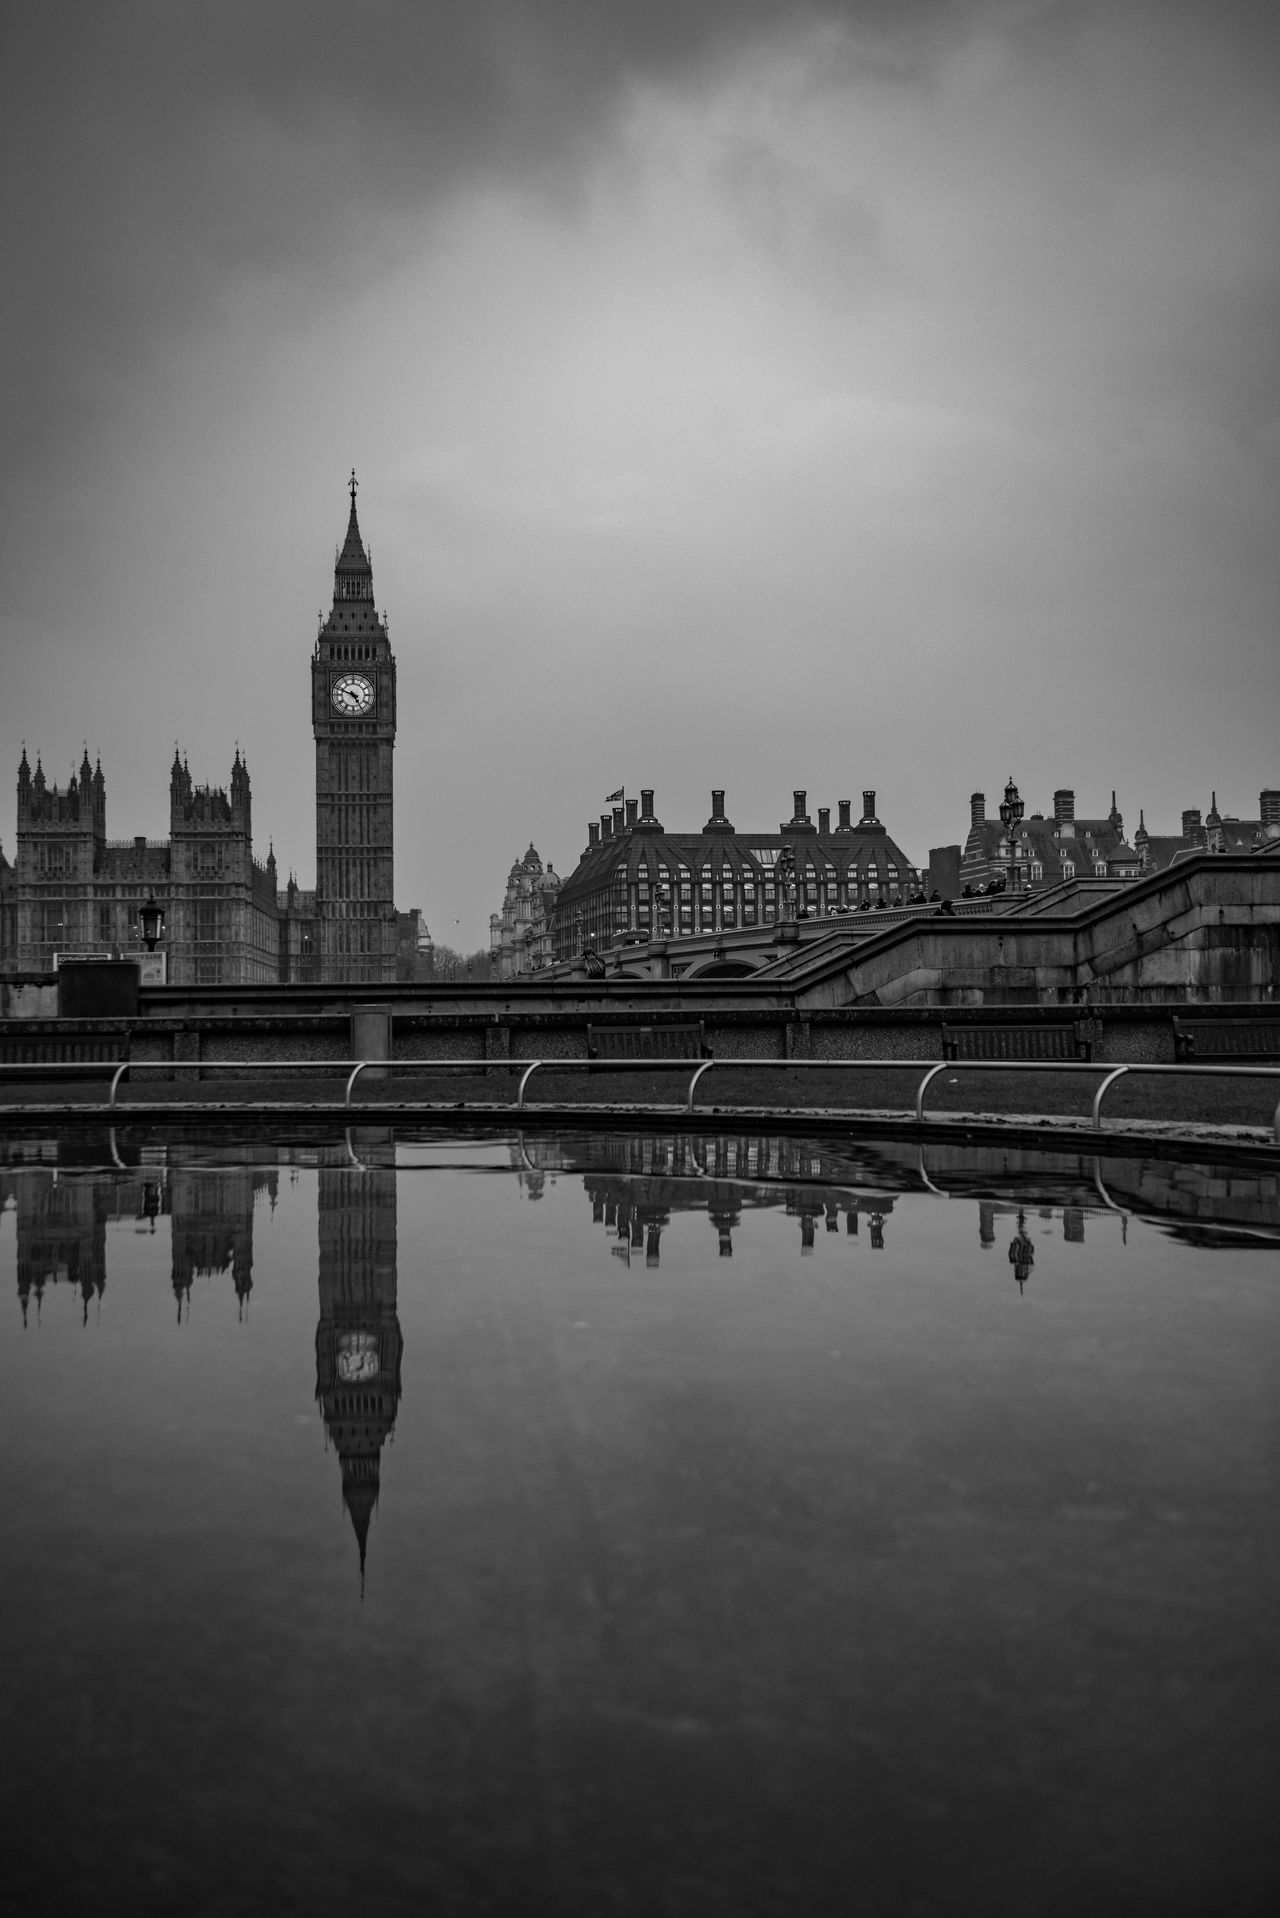 Big Ben, reflected in water Architecture Big Ben Black And White Britain Building Exterior Built Structure Capital City Clouds Copy Space Day Elisabeth Tower England Famous Place London No People Outdoors Reflection Sky Tourism Travel Destinations United Kingdom Water Waterfront Westminster